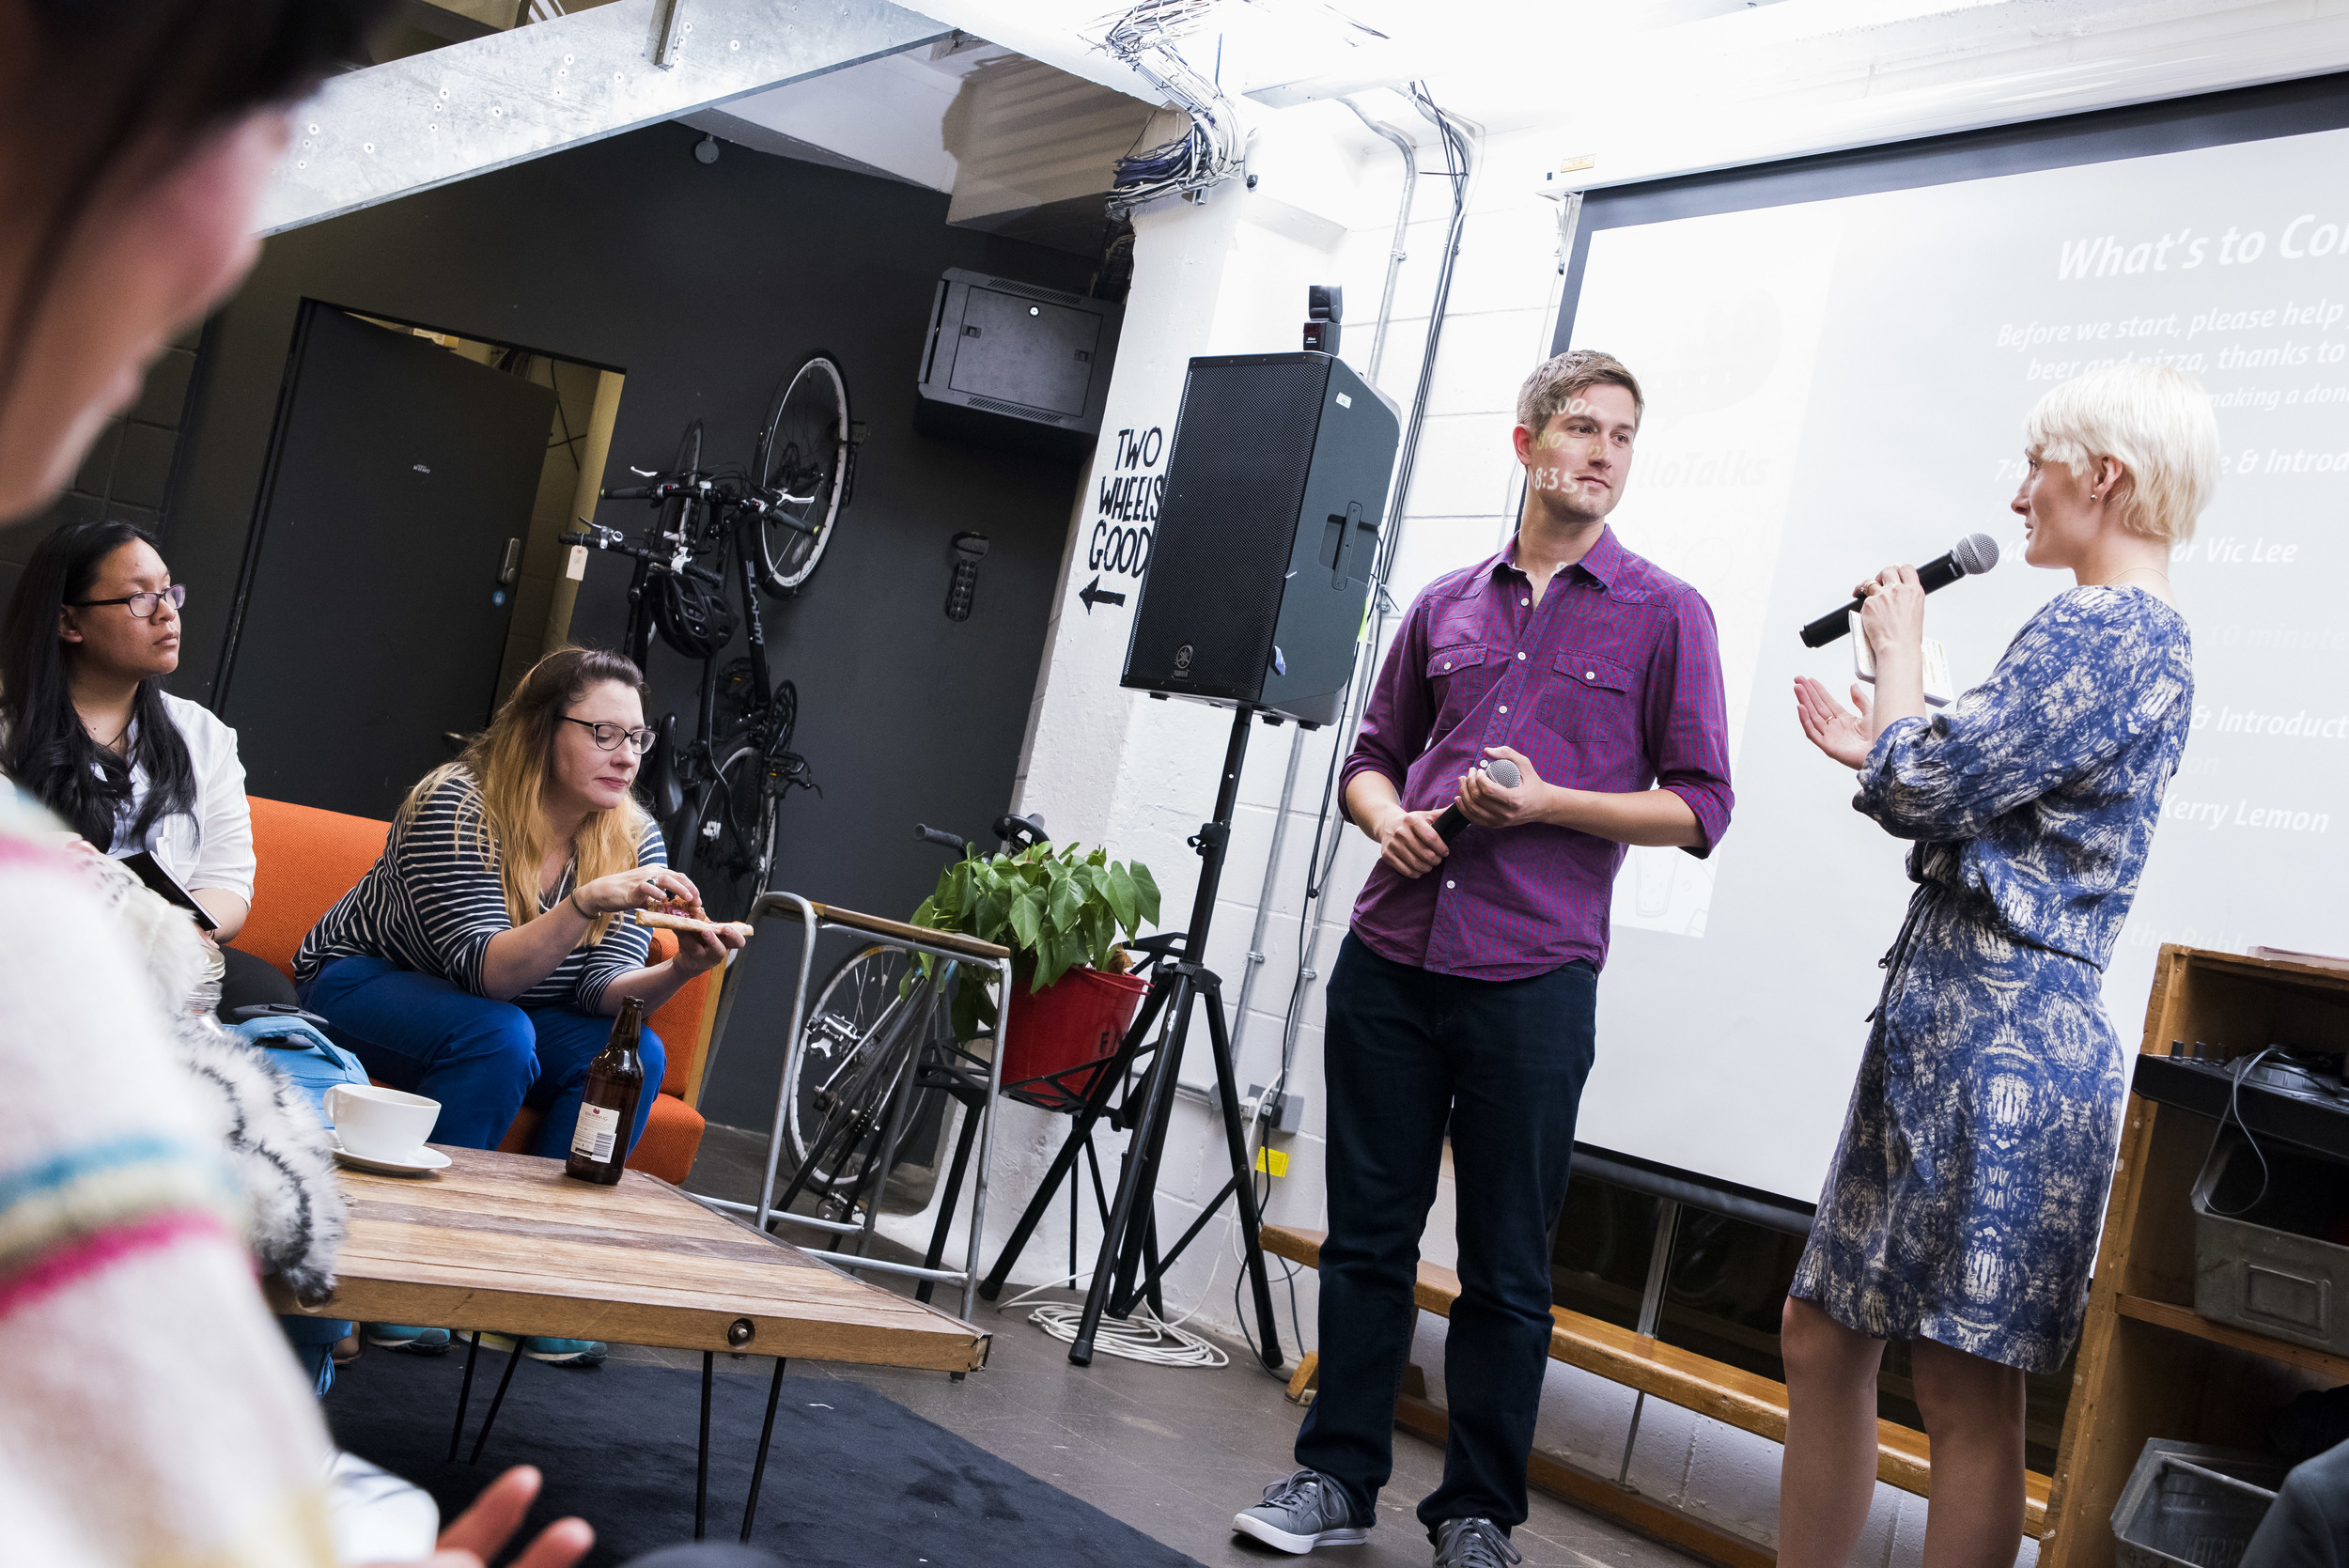 Rob Barrett and Willa Gebbie hosting at Yo Illo Talks - llustration events in London